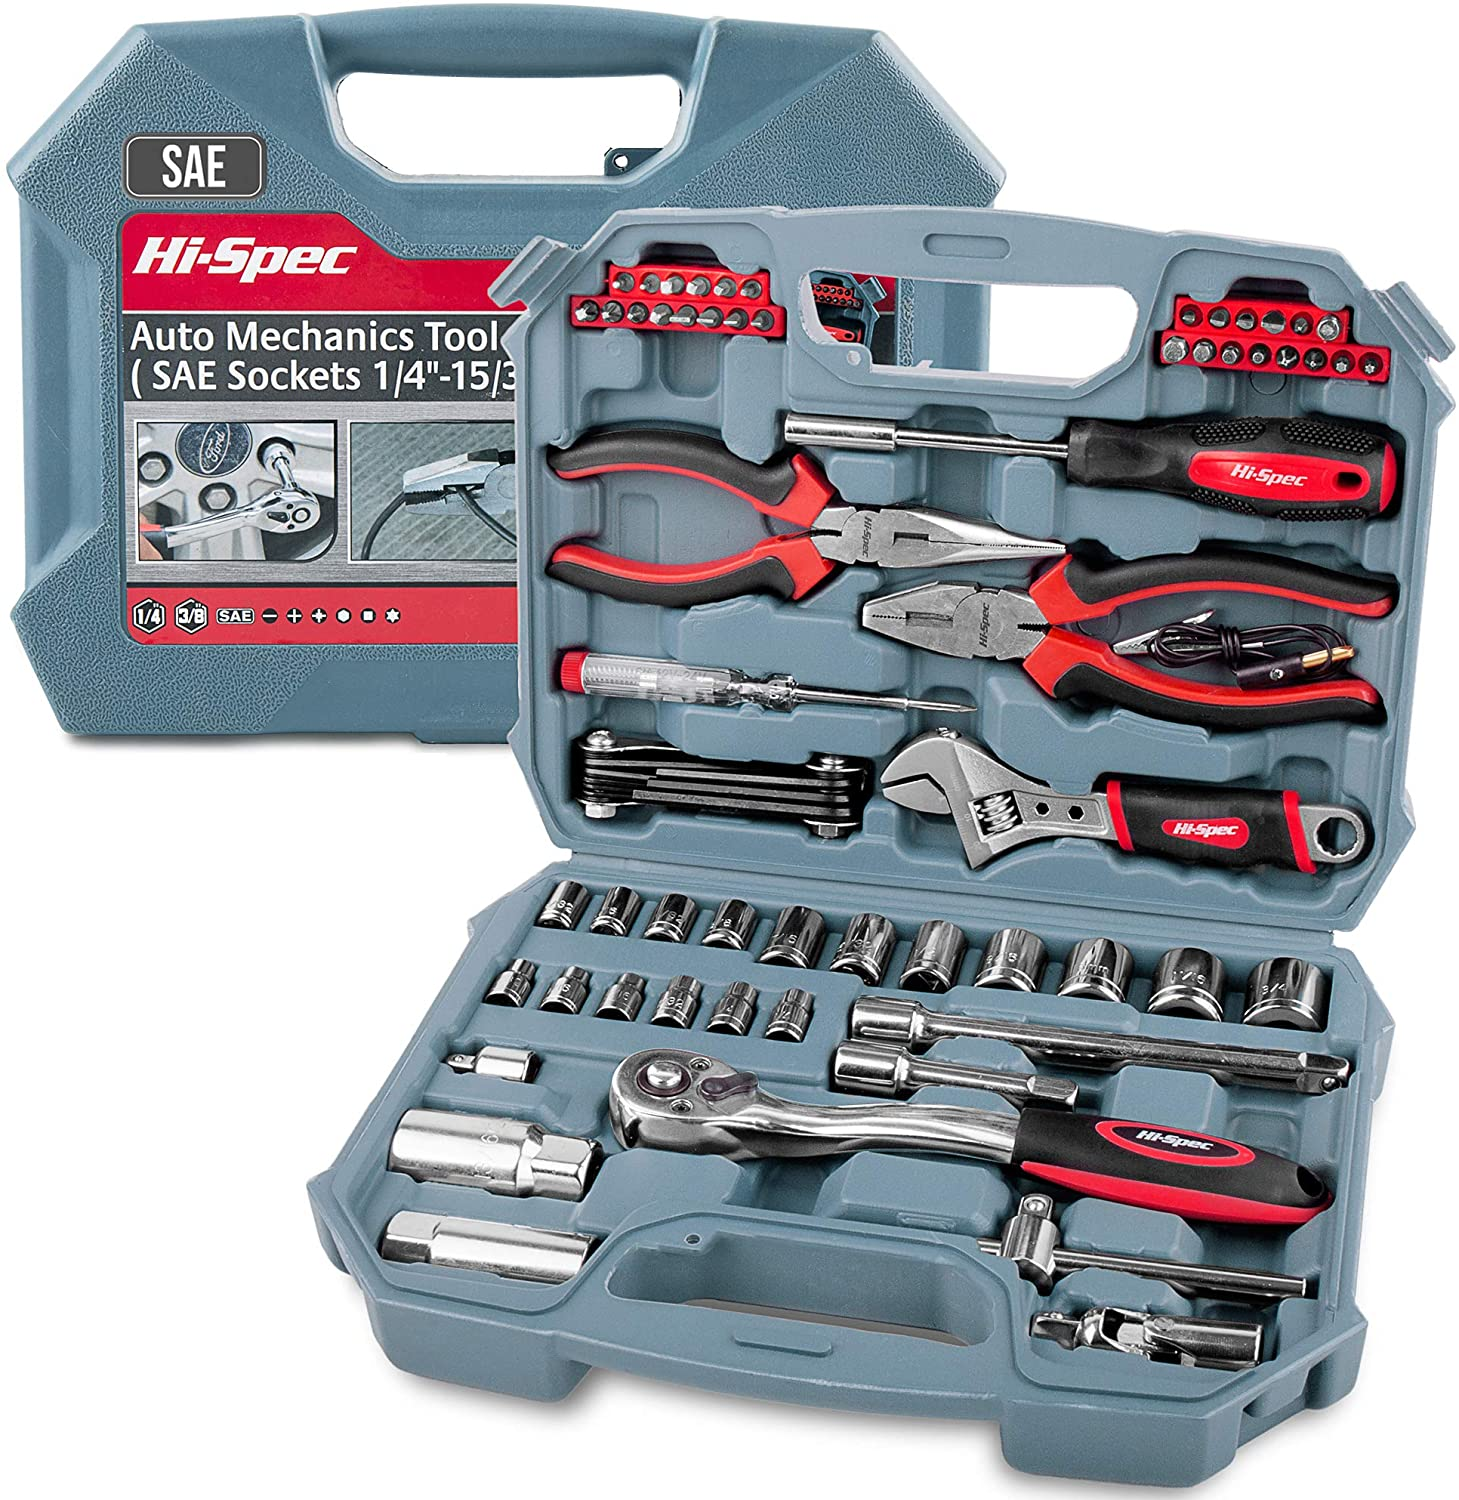 Hi-Spec 67 Piece Auto Mechanics Tool Kit Set with SAE Sockets. Car, Bike & Vehicle DIY Hand Tools for Repair & Maintenance. Complete in a Carry Case